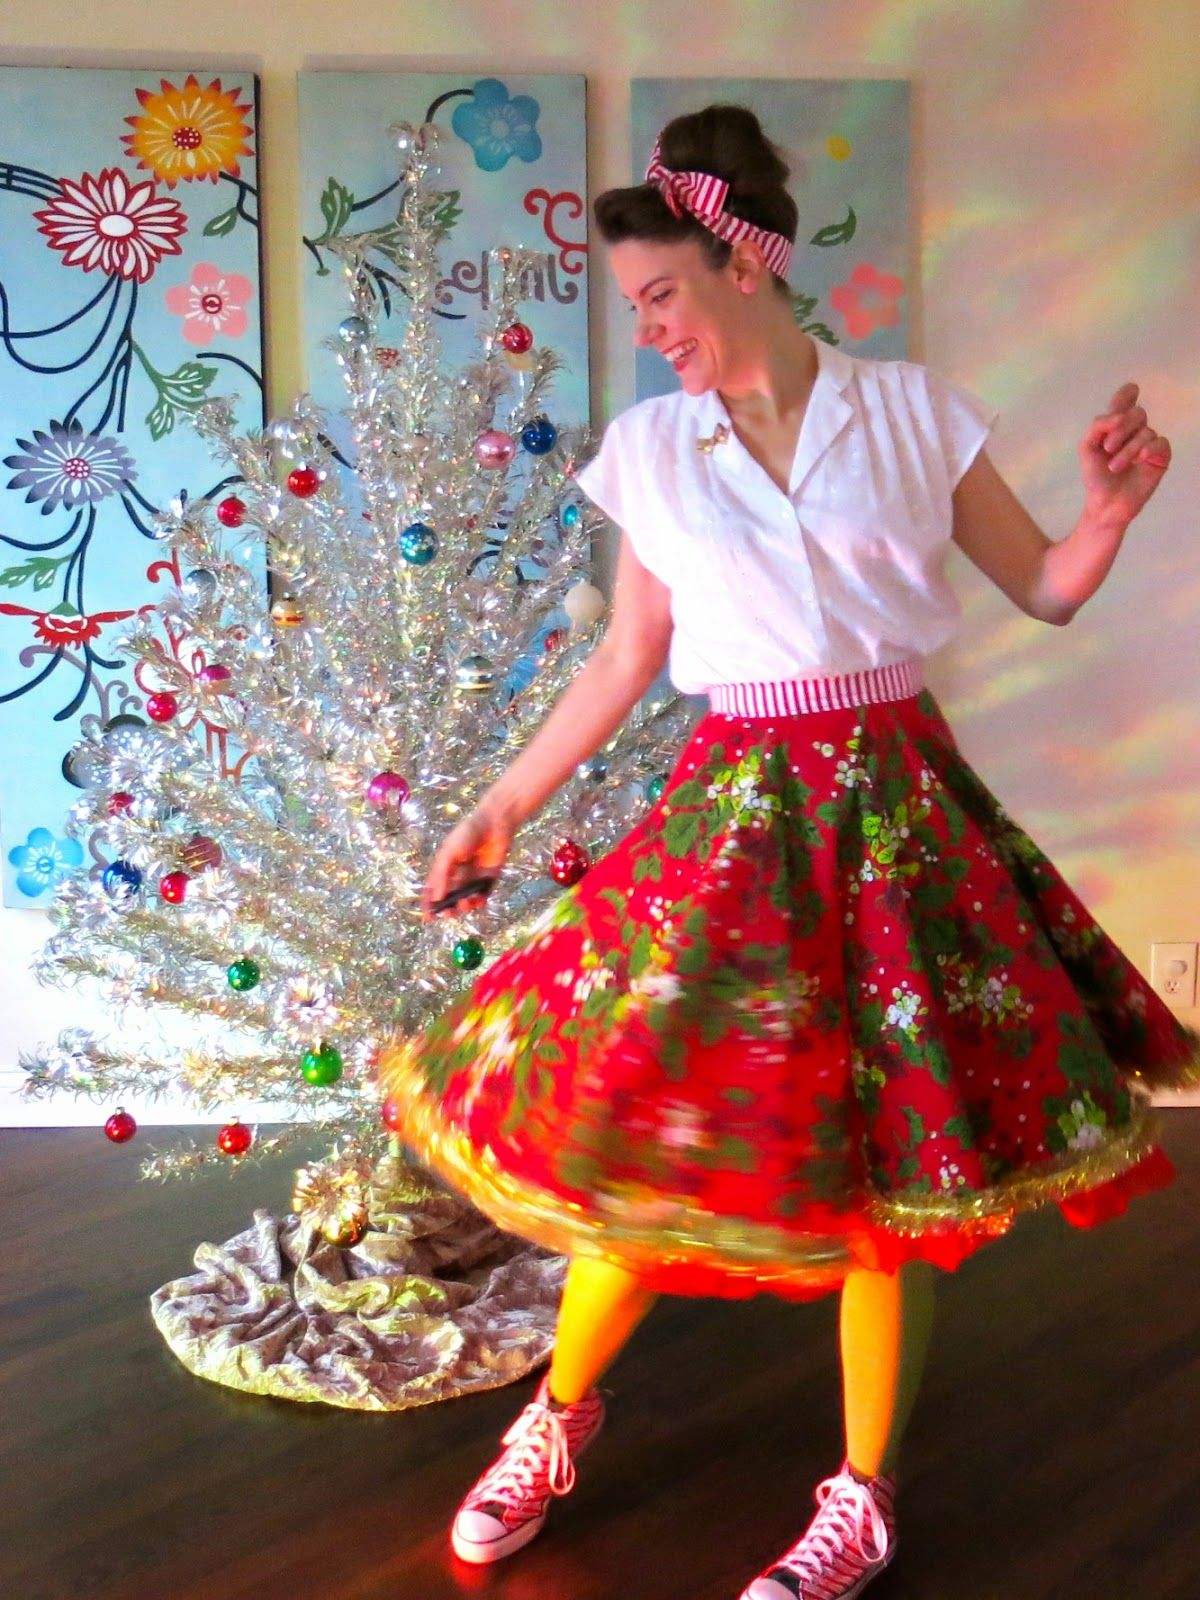 Cassie Stephens Diy Christmas Tablecloth To Lady Skirt Diy Christmas Outfit Diy Christmas Tree Skirt Christmas Tree Skirt